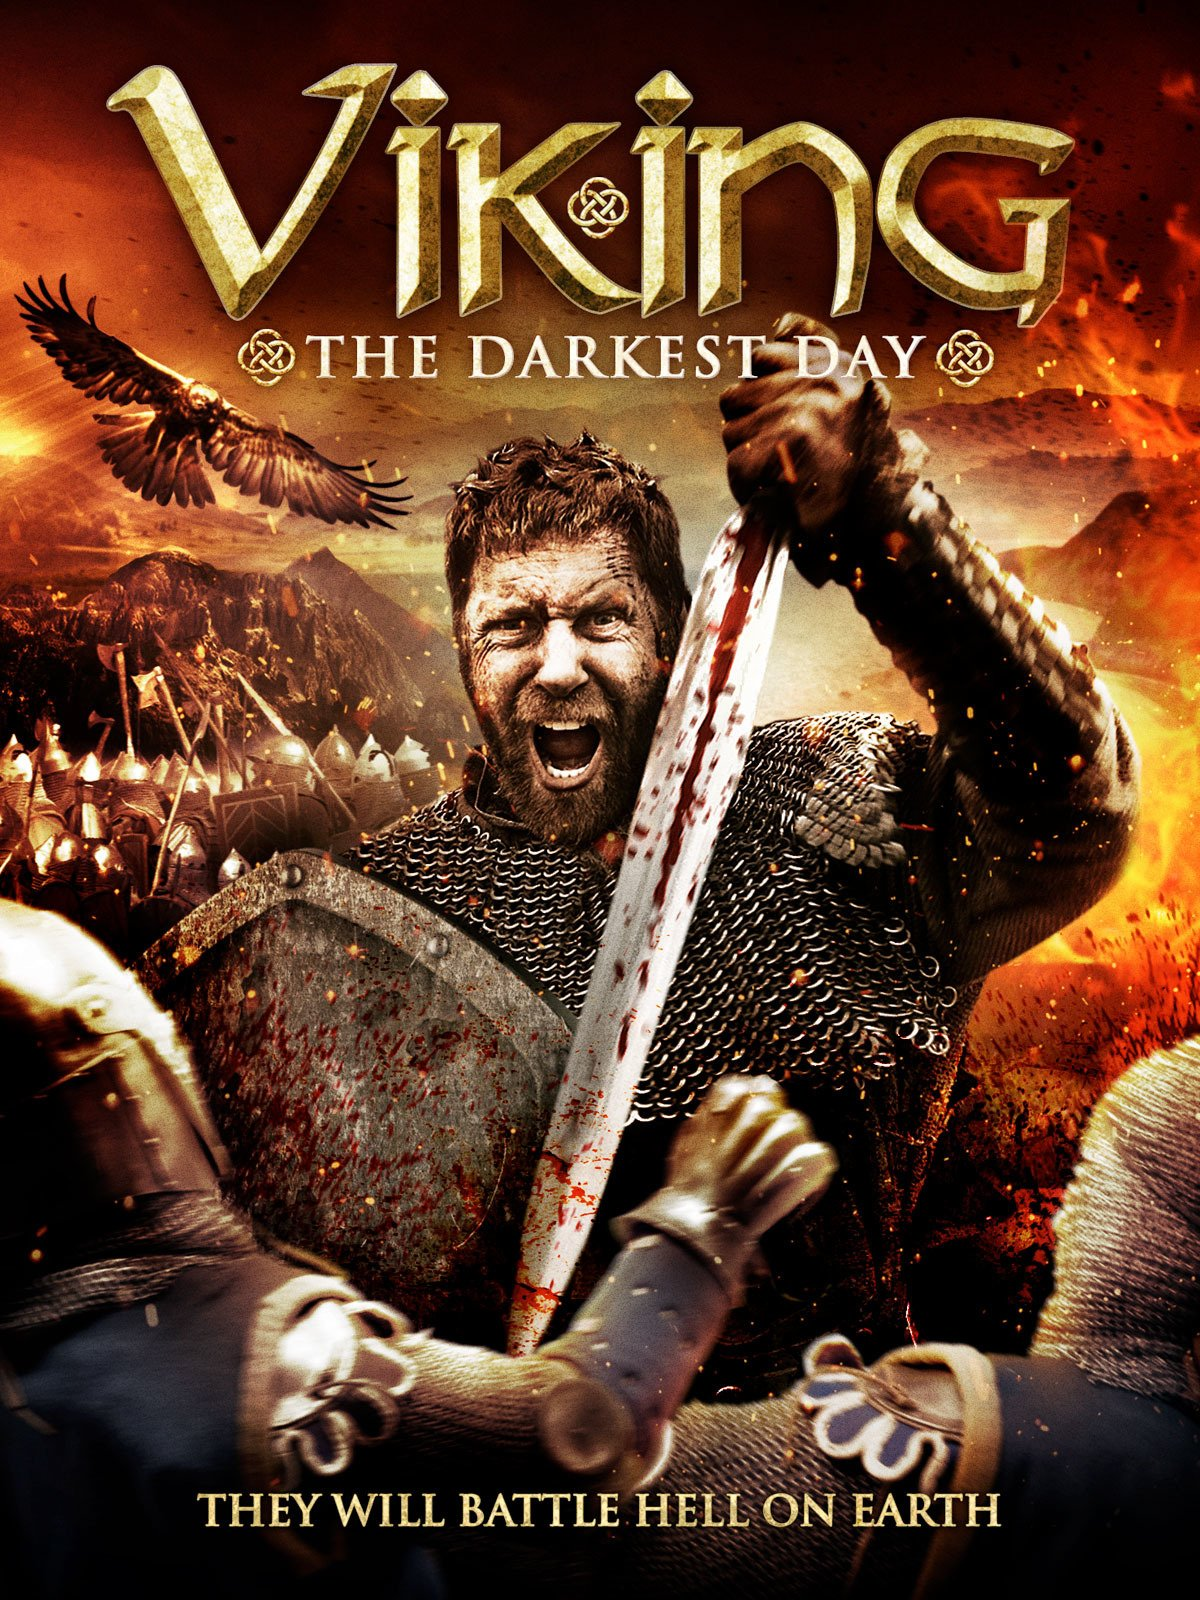 Viking: The Darkest Day